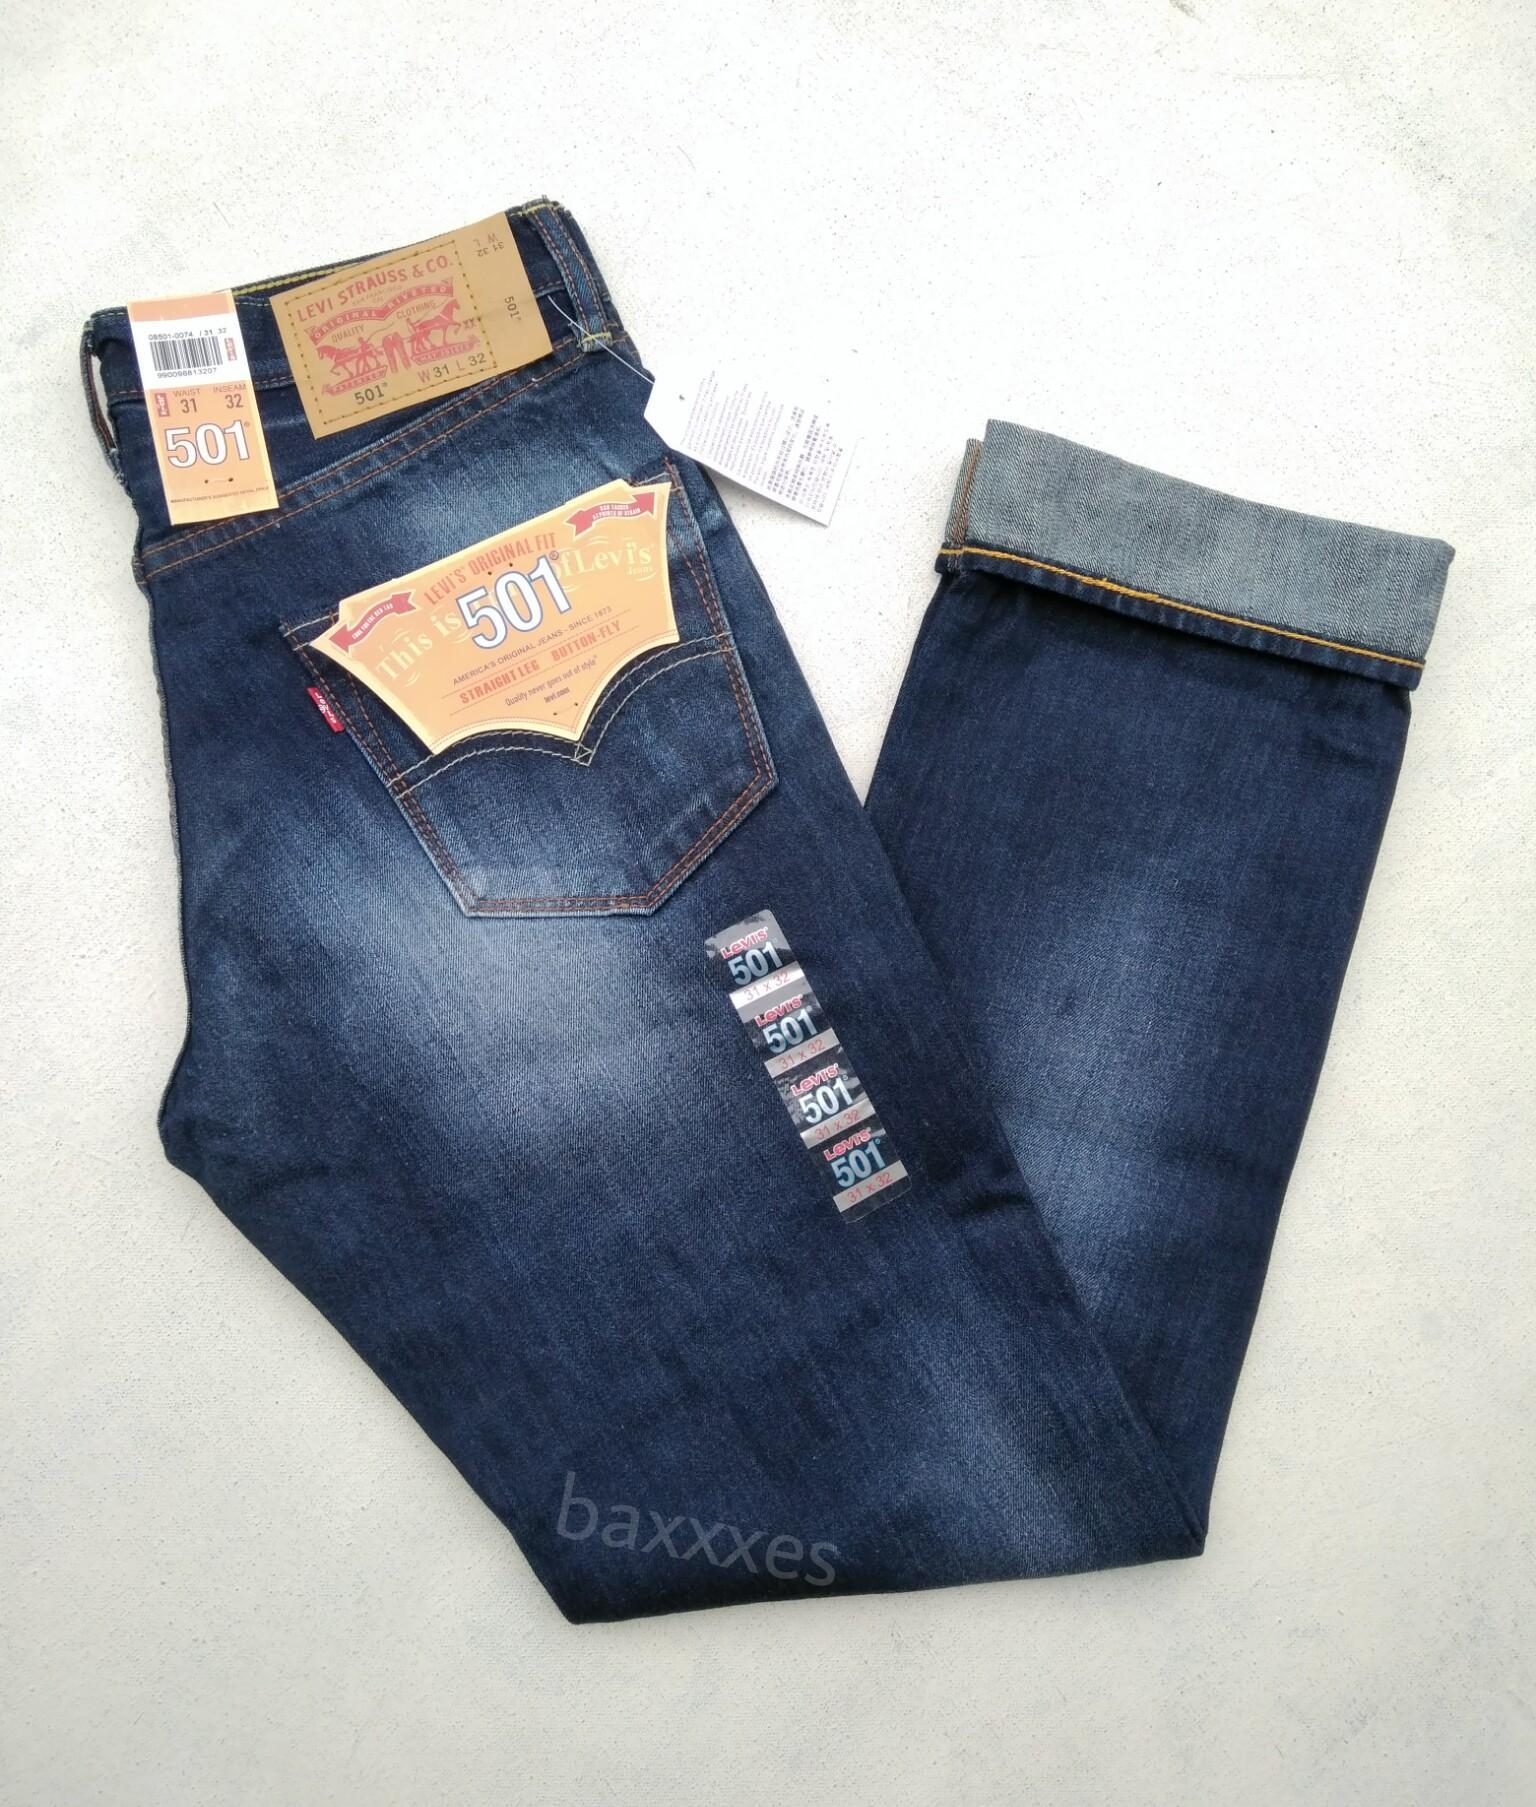 Fashion Archives Page 770 Of 2084 Harga Murah Lois Jeans Original Jaket Pria Mjf090 Navy Xl Levi S 501 Selvedge Dark Blue